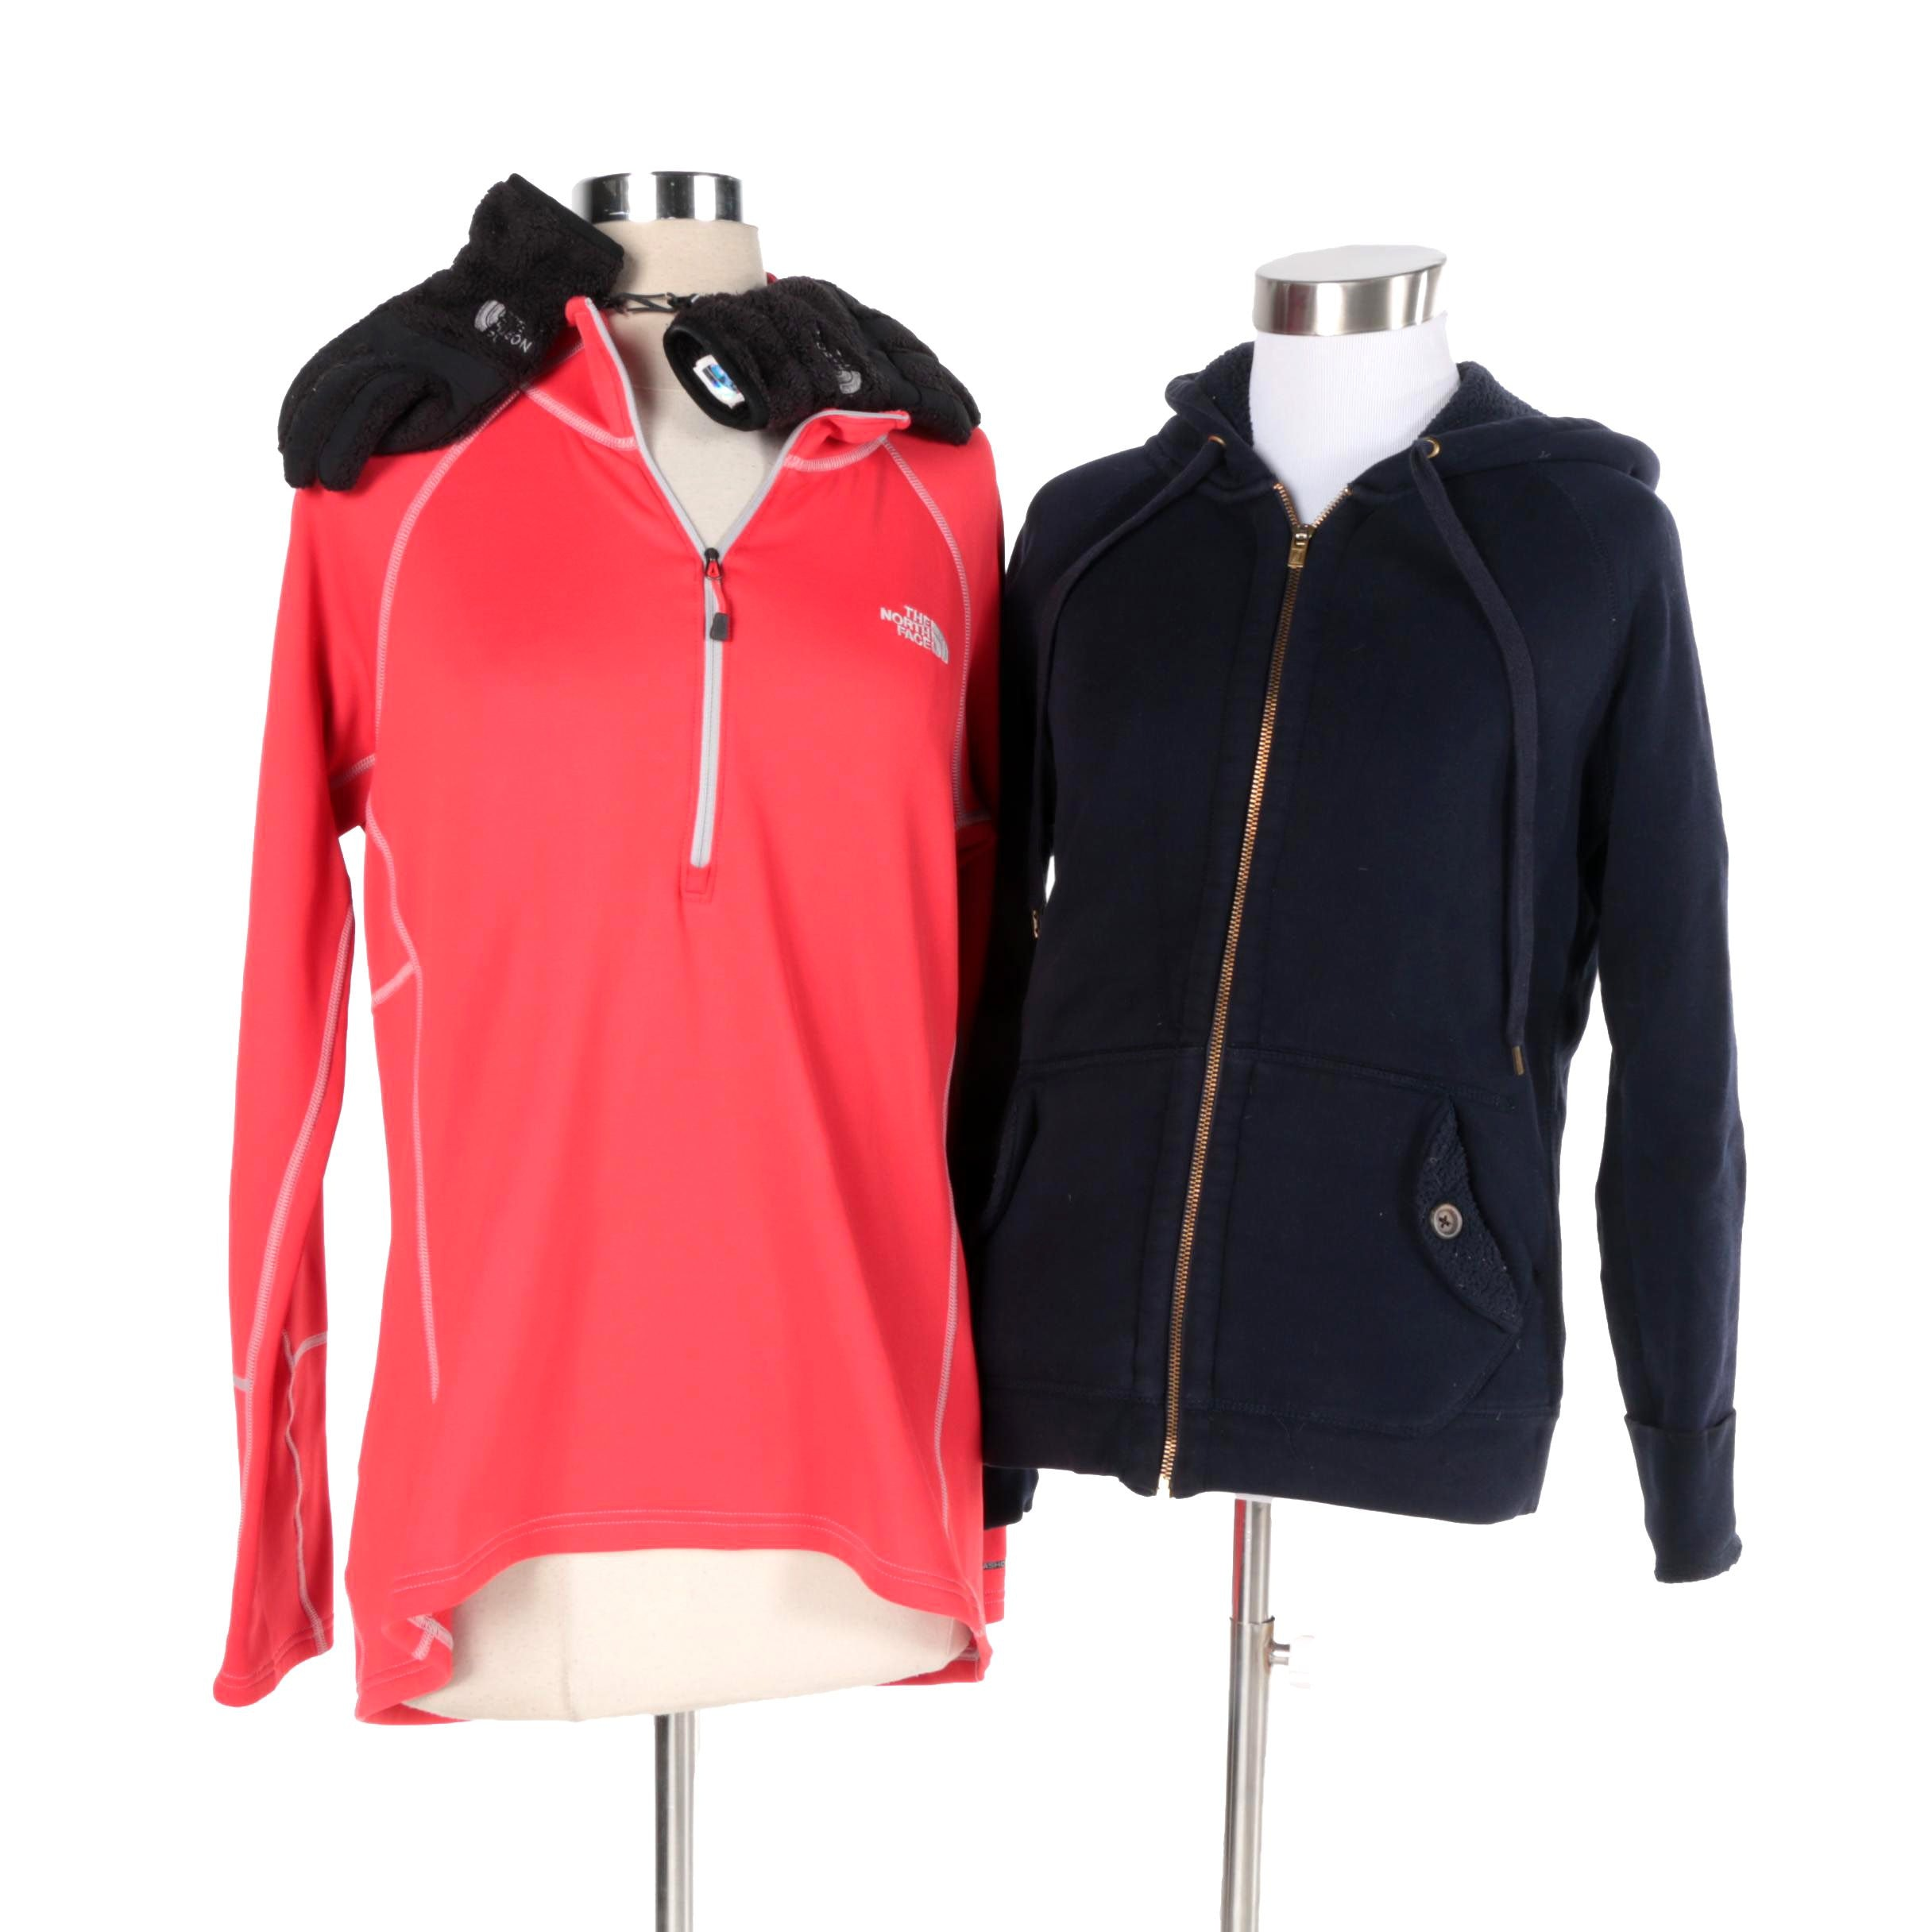 Women's The North Face Pullover, Gloves and J. Crew Hoodie